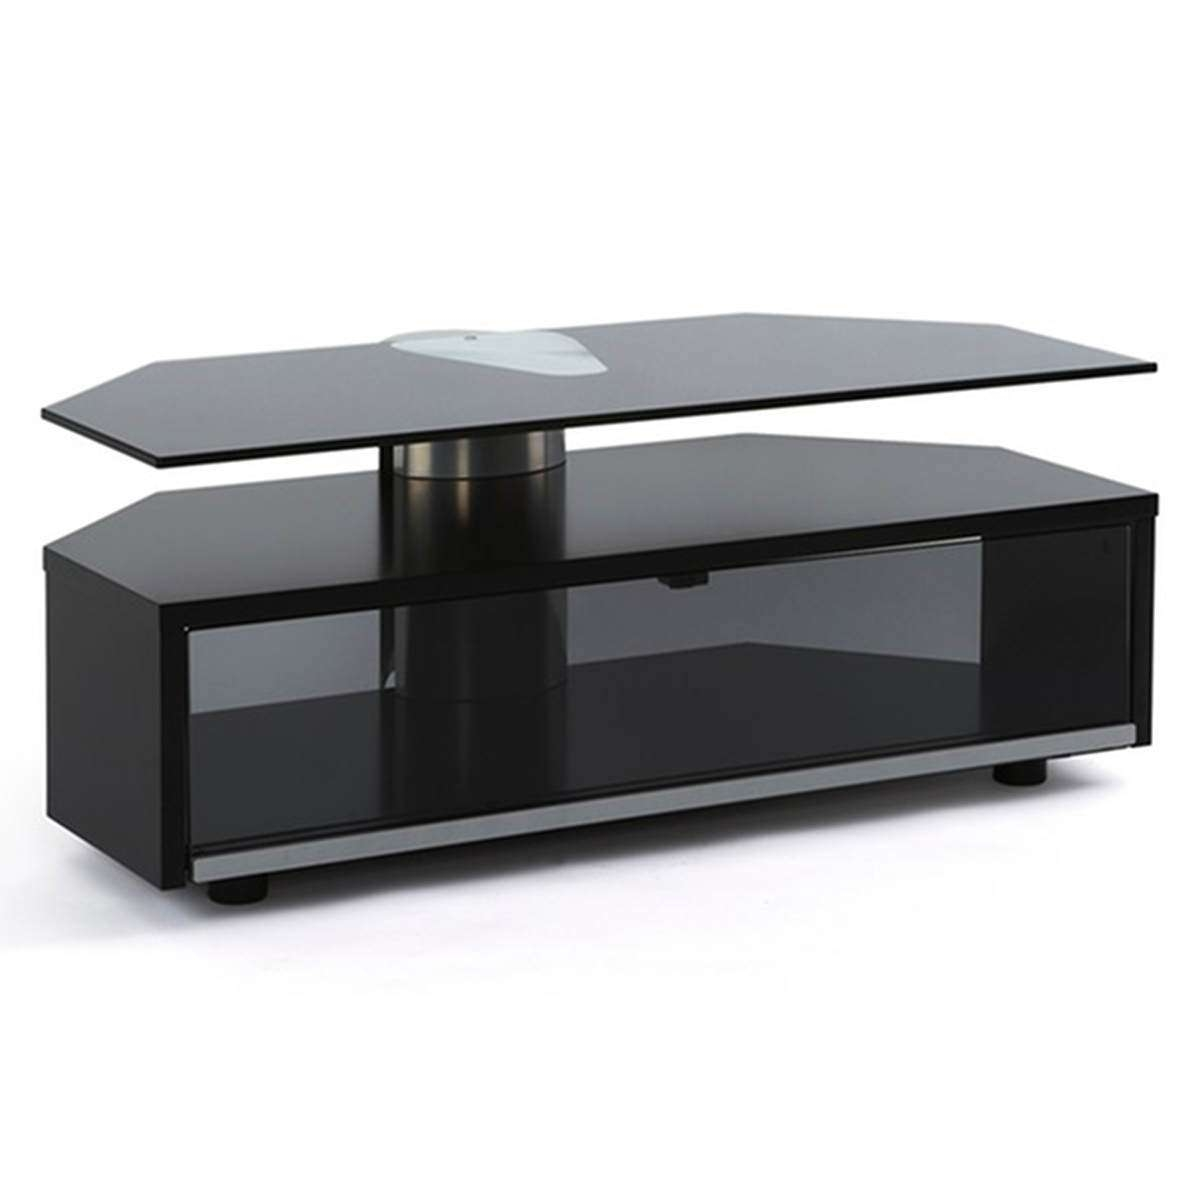 Off The Wall Duo Glass Fronted Tv Cabinet Stand 1000Mm Black Within Glass Fronted Tv Cabinets (View 16 of 20)